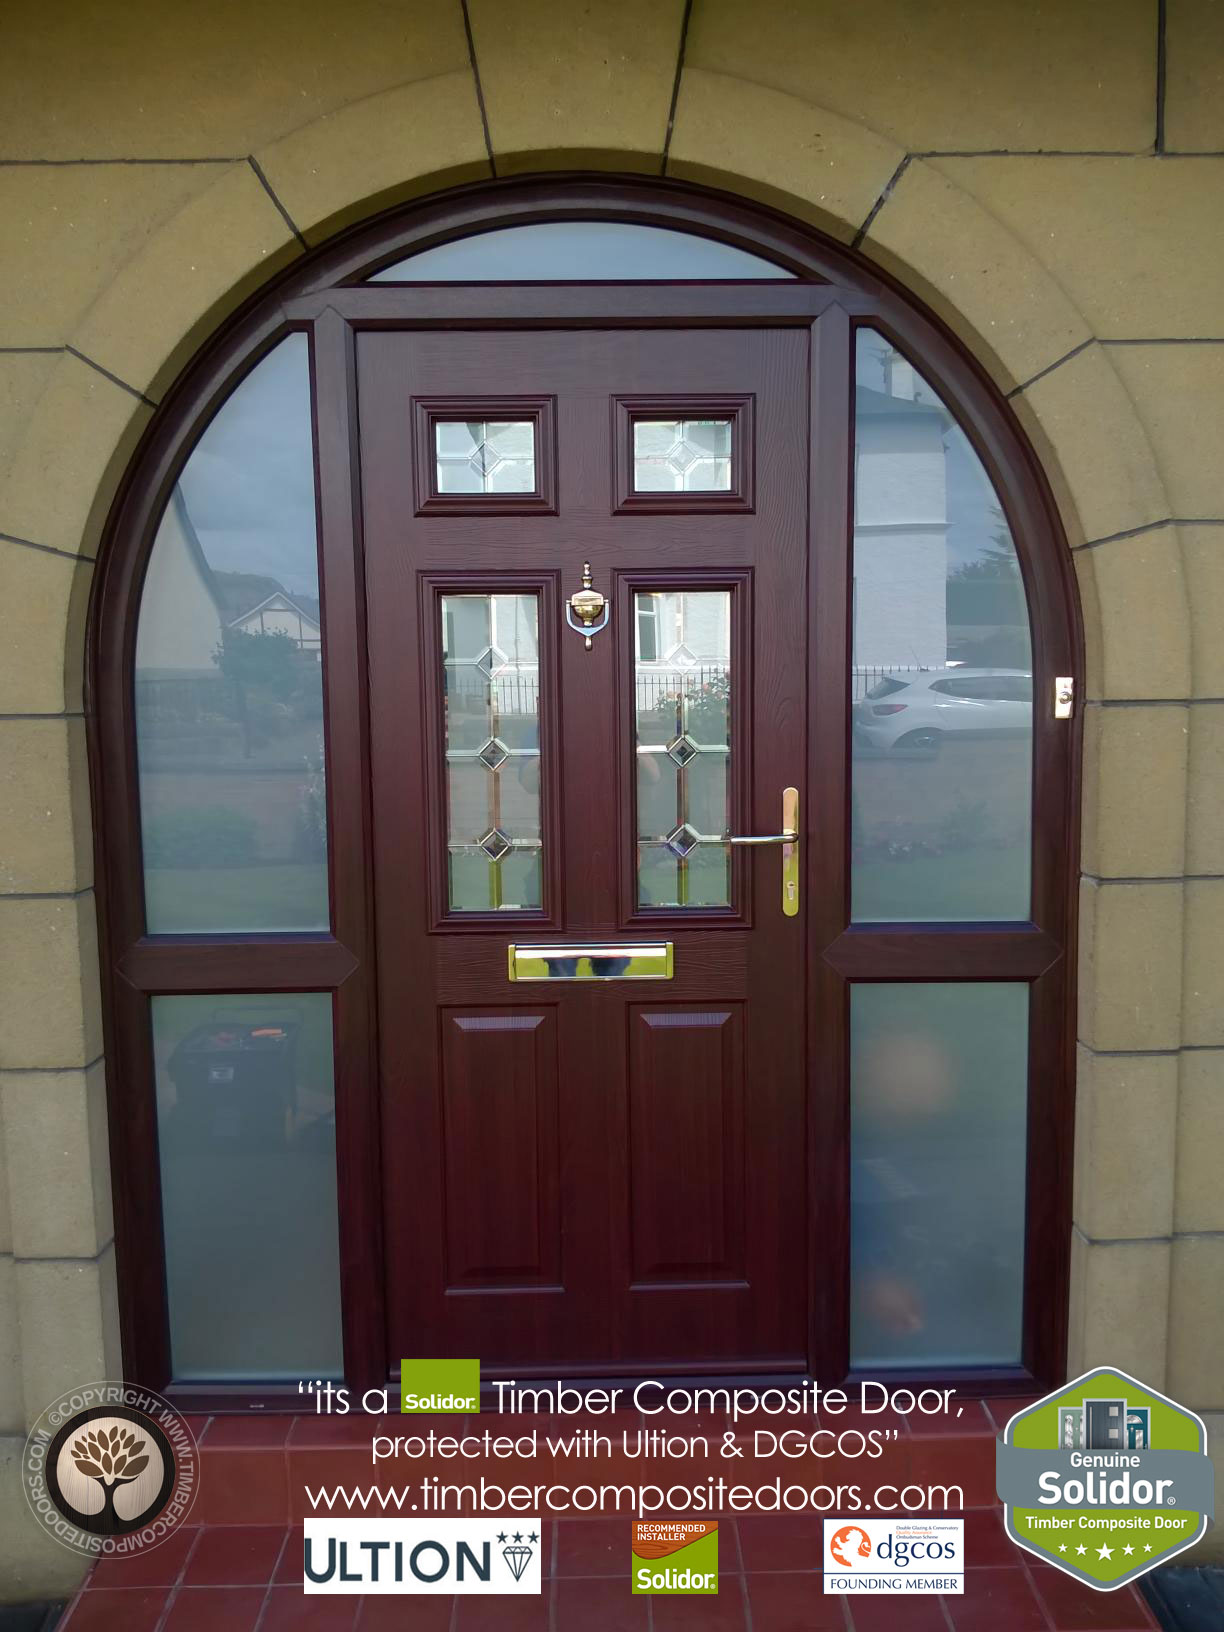 Arched-Composite-Solidor-Timber-Composite-Door